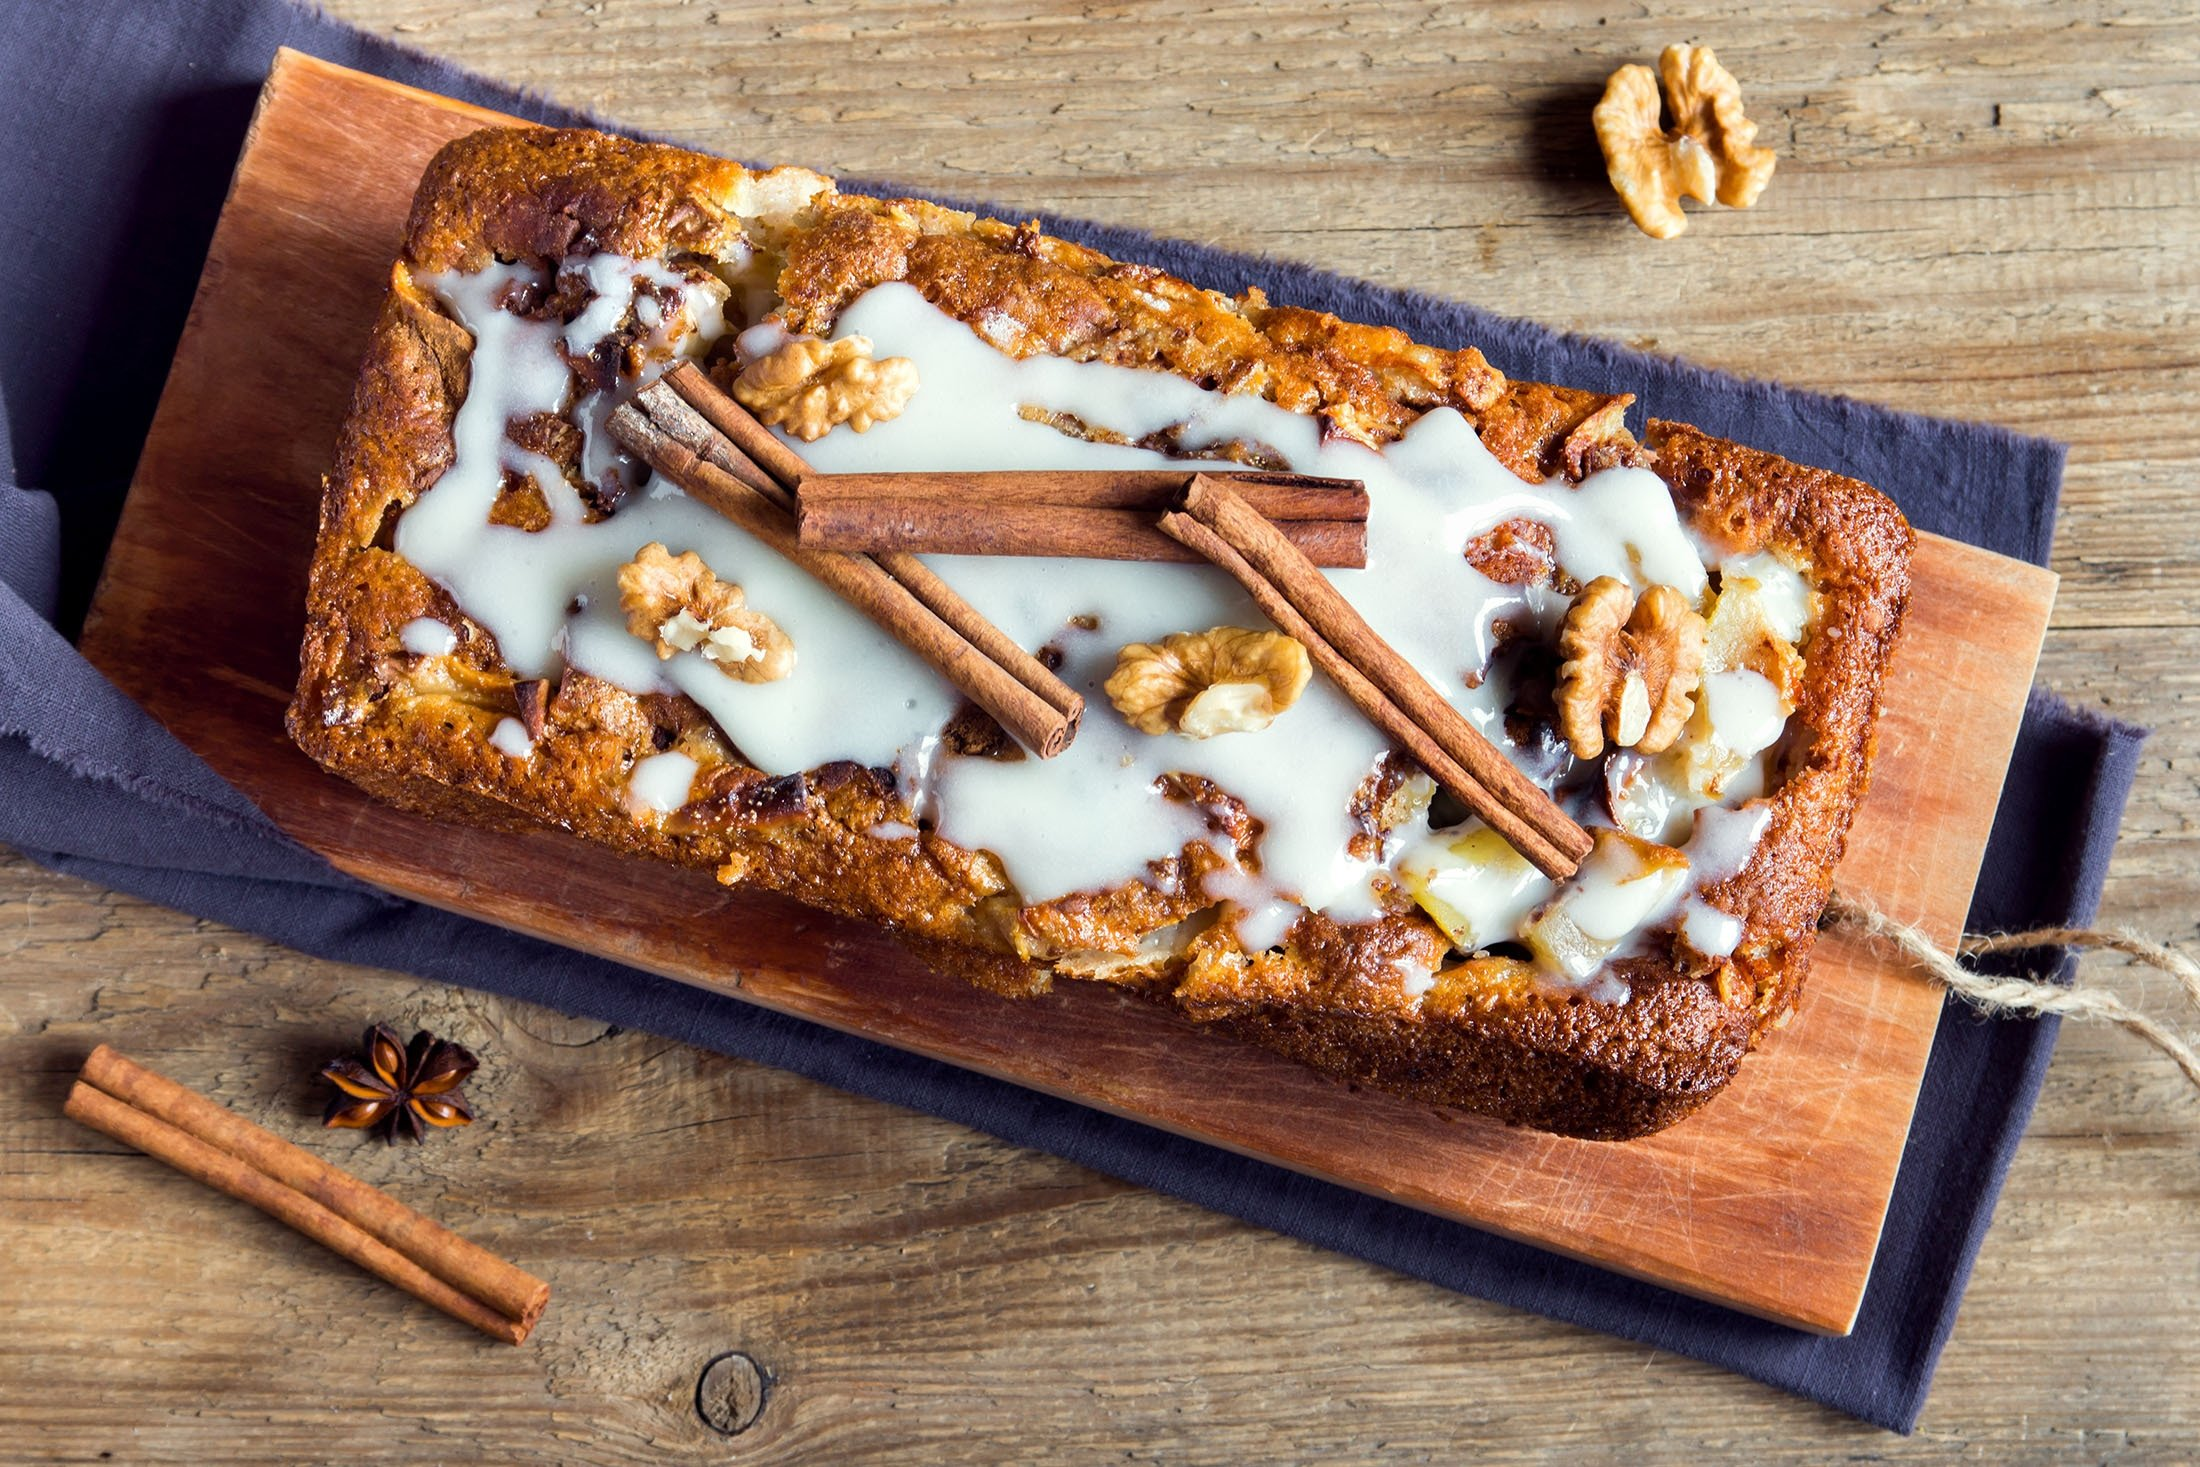 Cinnamon cake is a must-try if you have never had it before, try adding apples. (Shutterstock Photo)